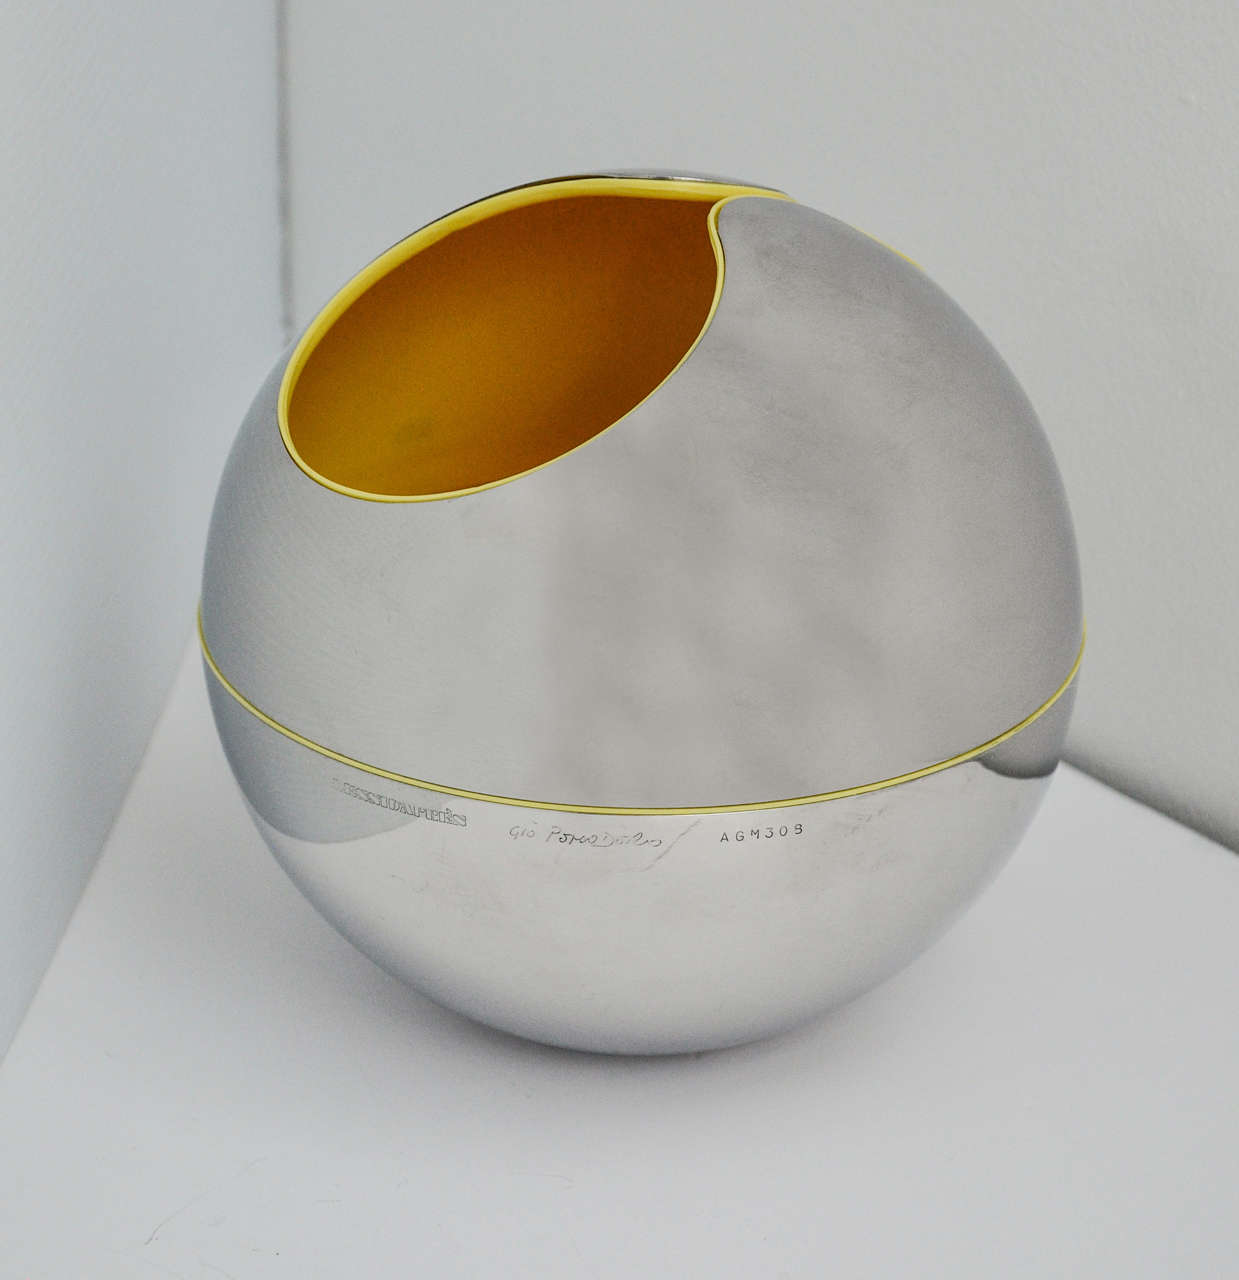 Italian Gio Pomodoro Sphere or Holder for Alessi d'Apres, 1972 For Sale